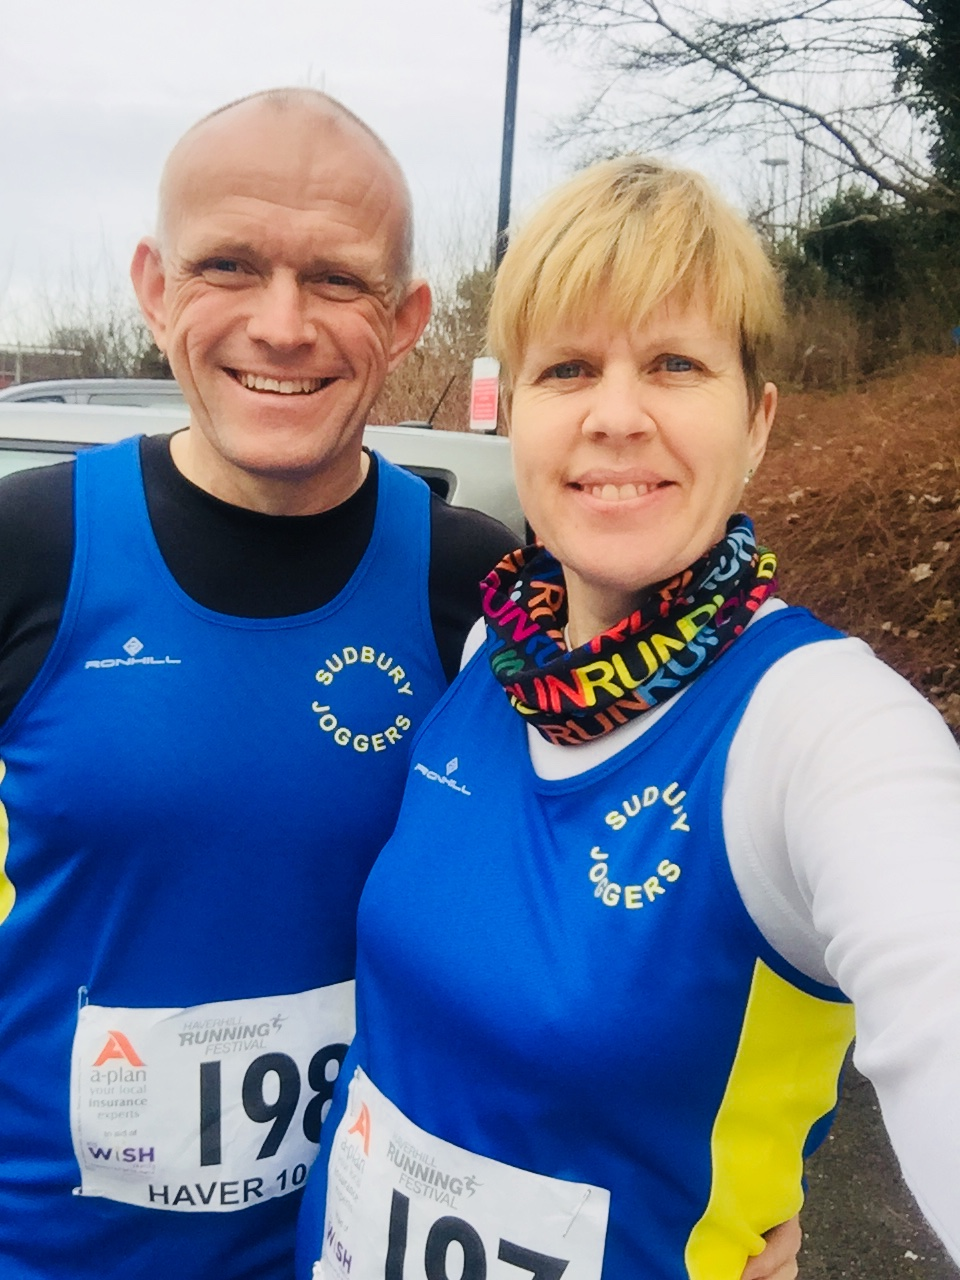 Steve Jeggo (left), Sarah Jeggo (right) at Haver10K 2018